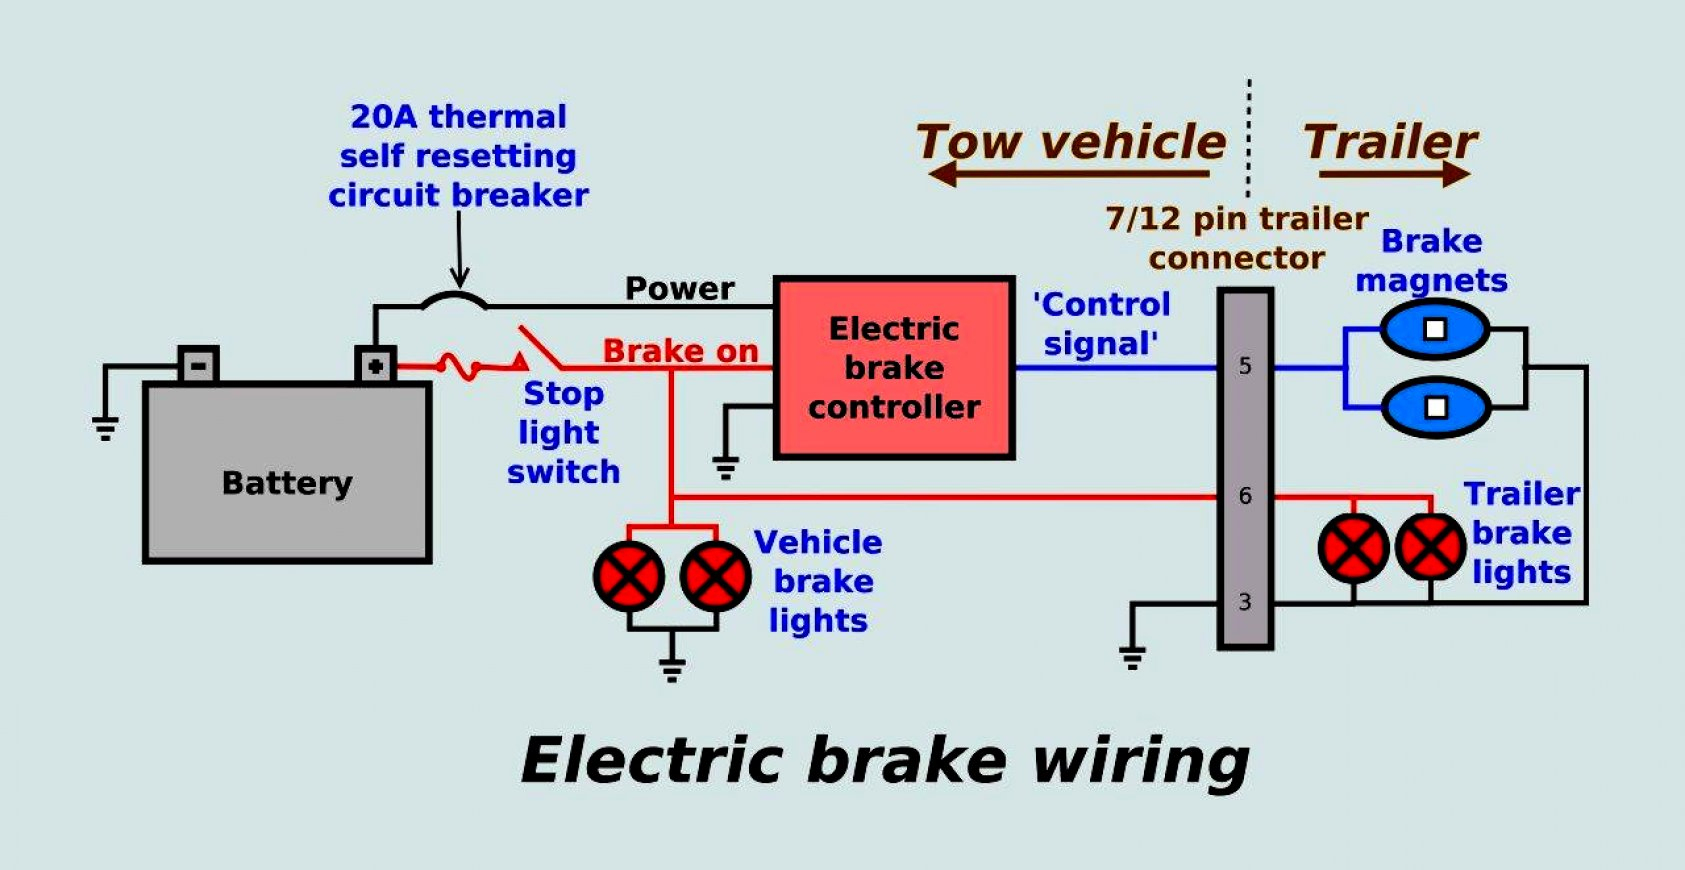 New Of Electric Trailer Brakes Wiring Diagram Brake Control Bg - Electric Trailer Brakes Wiring Diagram